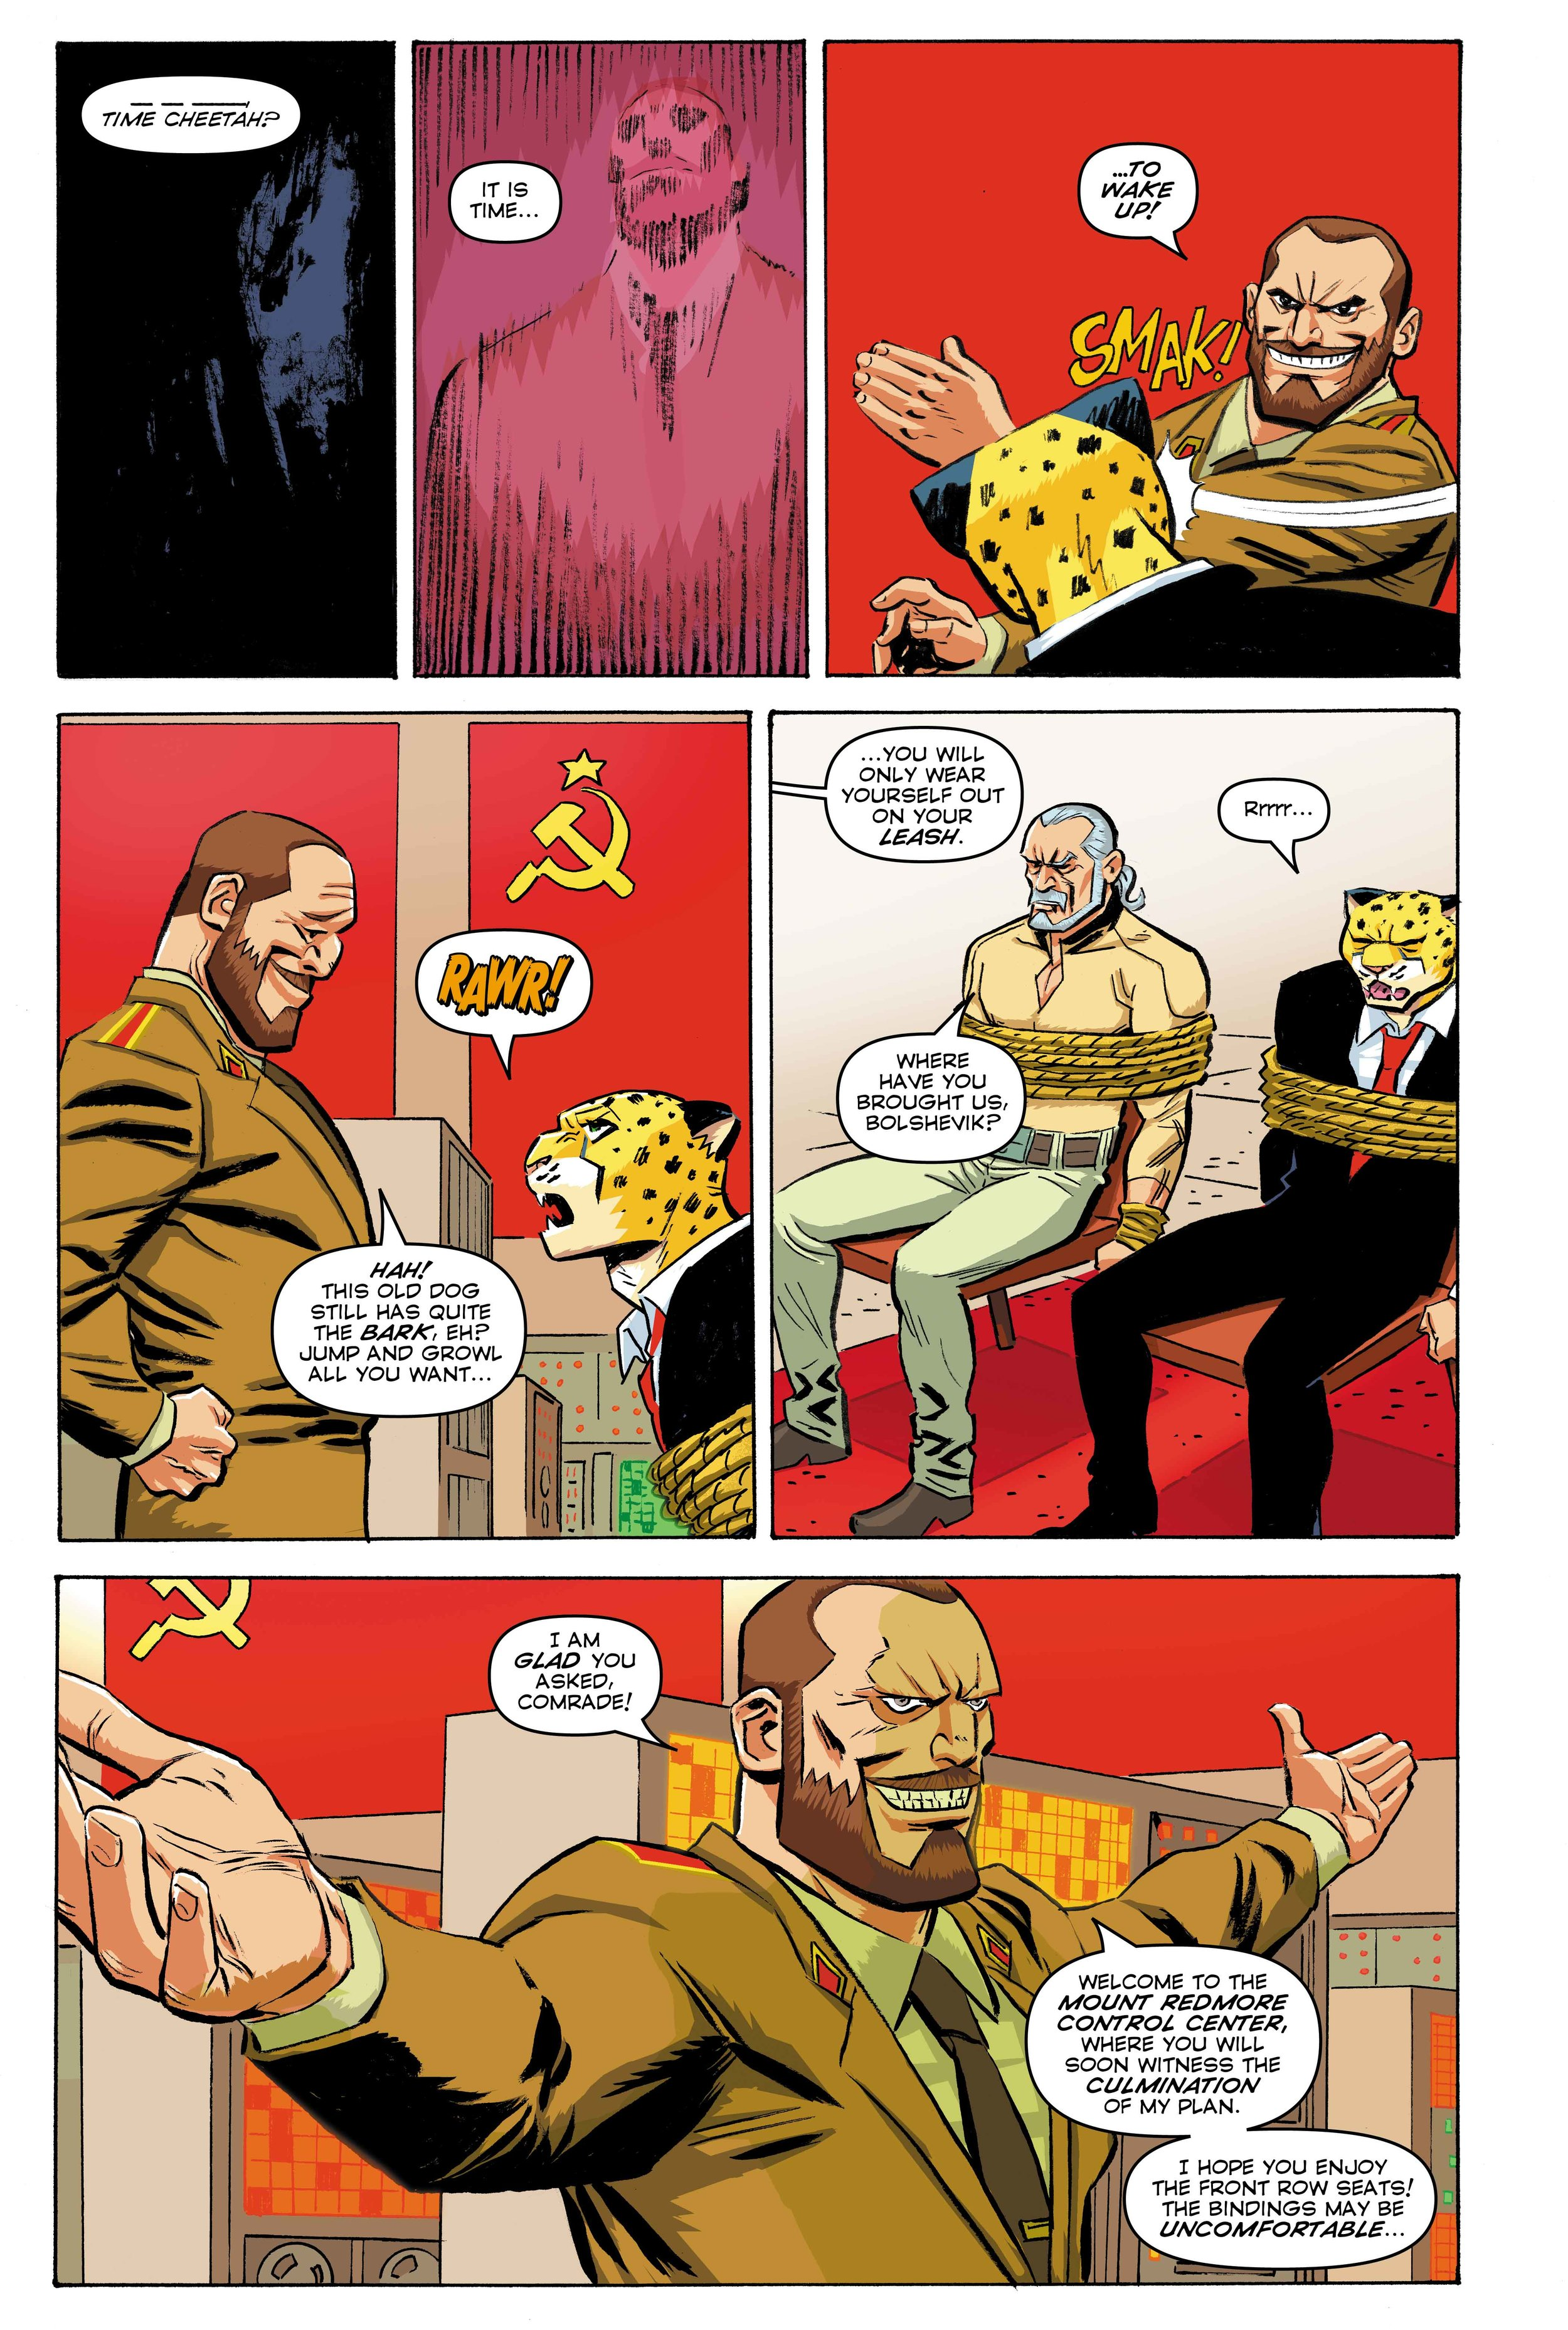 Time Cheetah - The Secret of Stalin Island Part 2 - Page 01